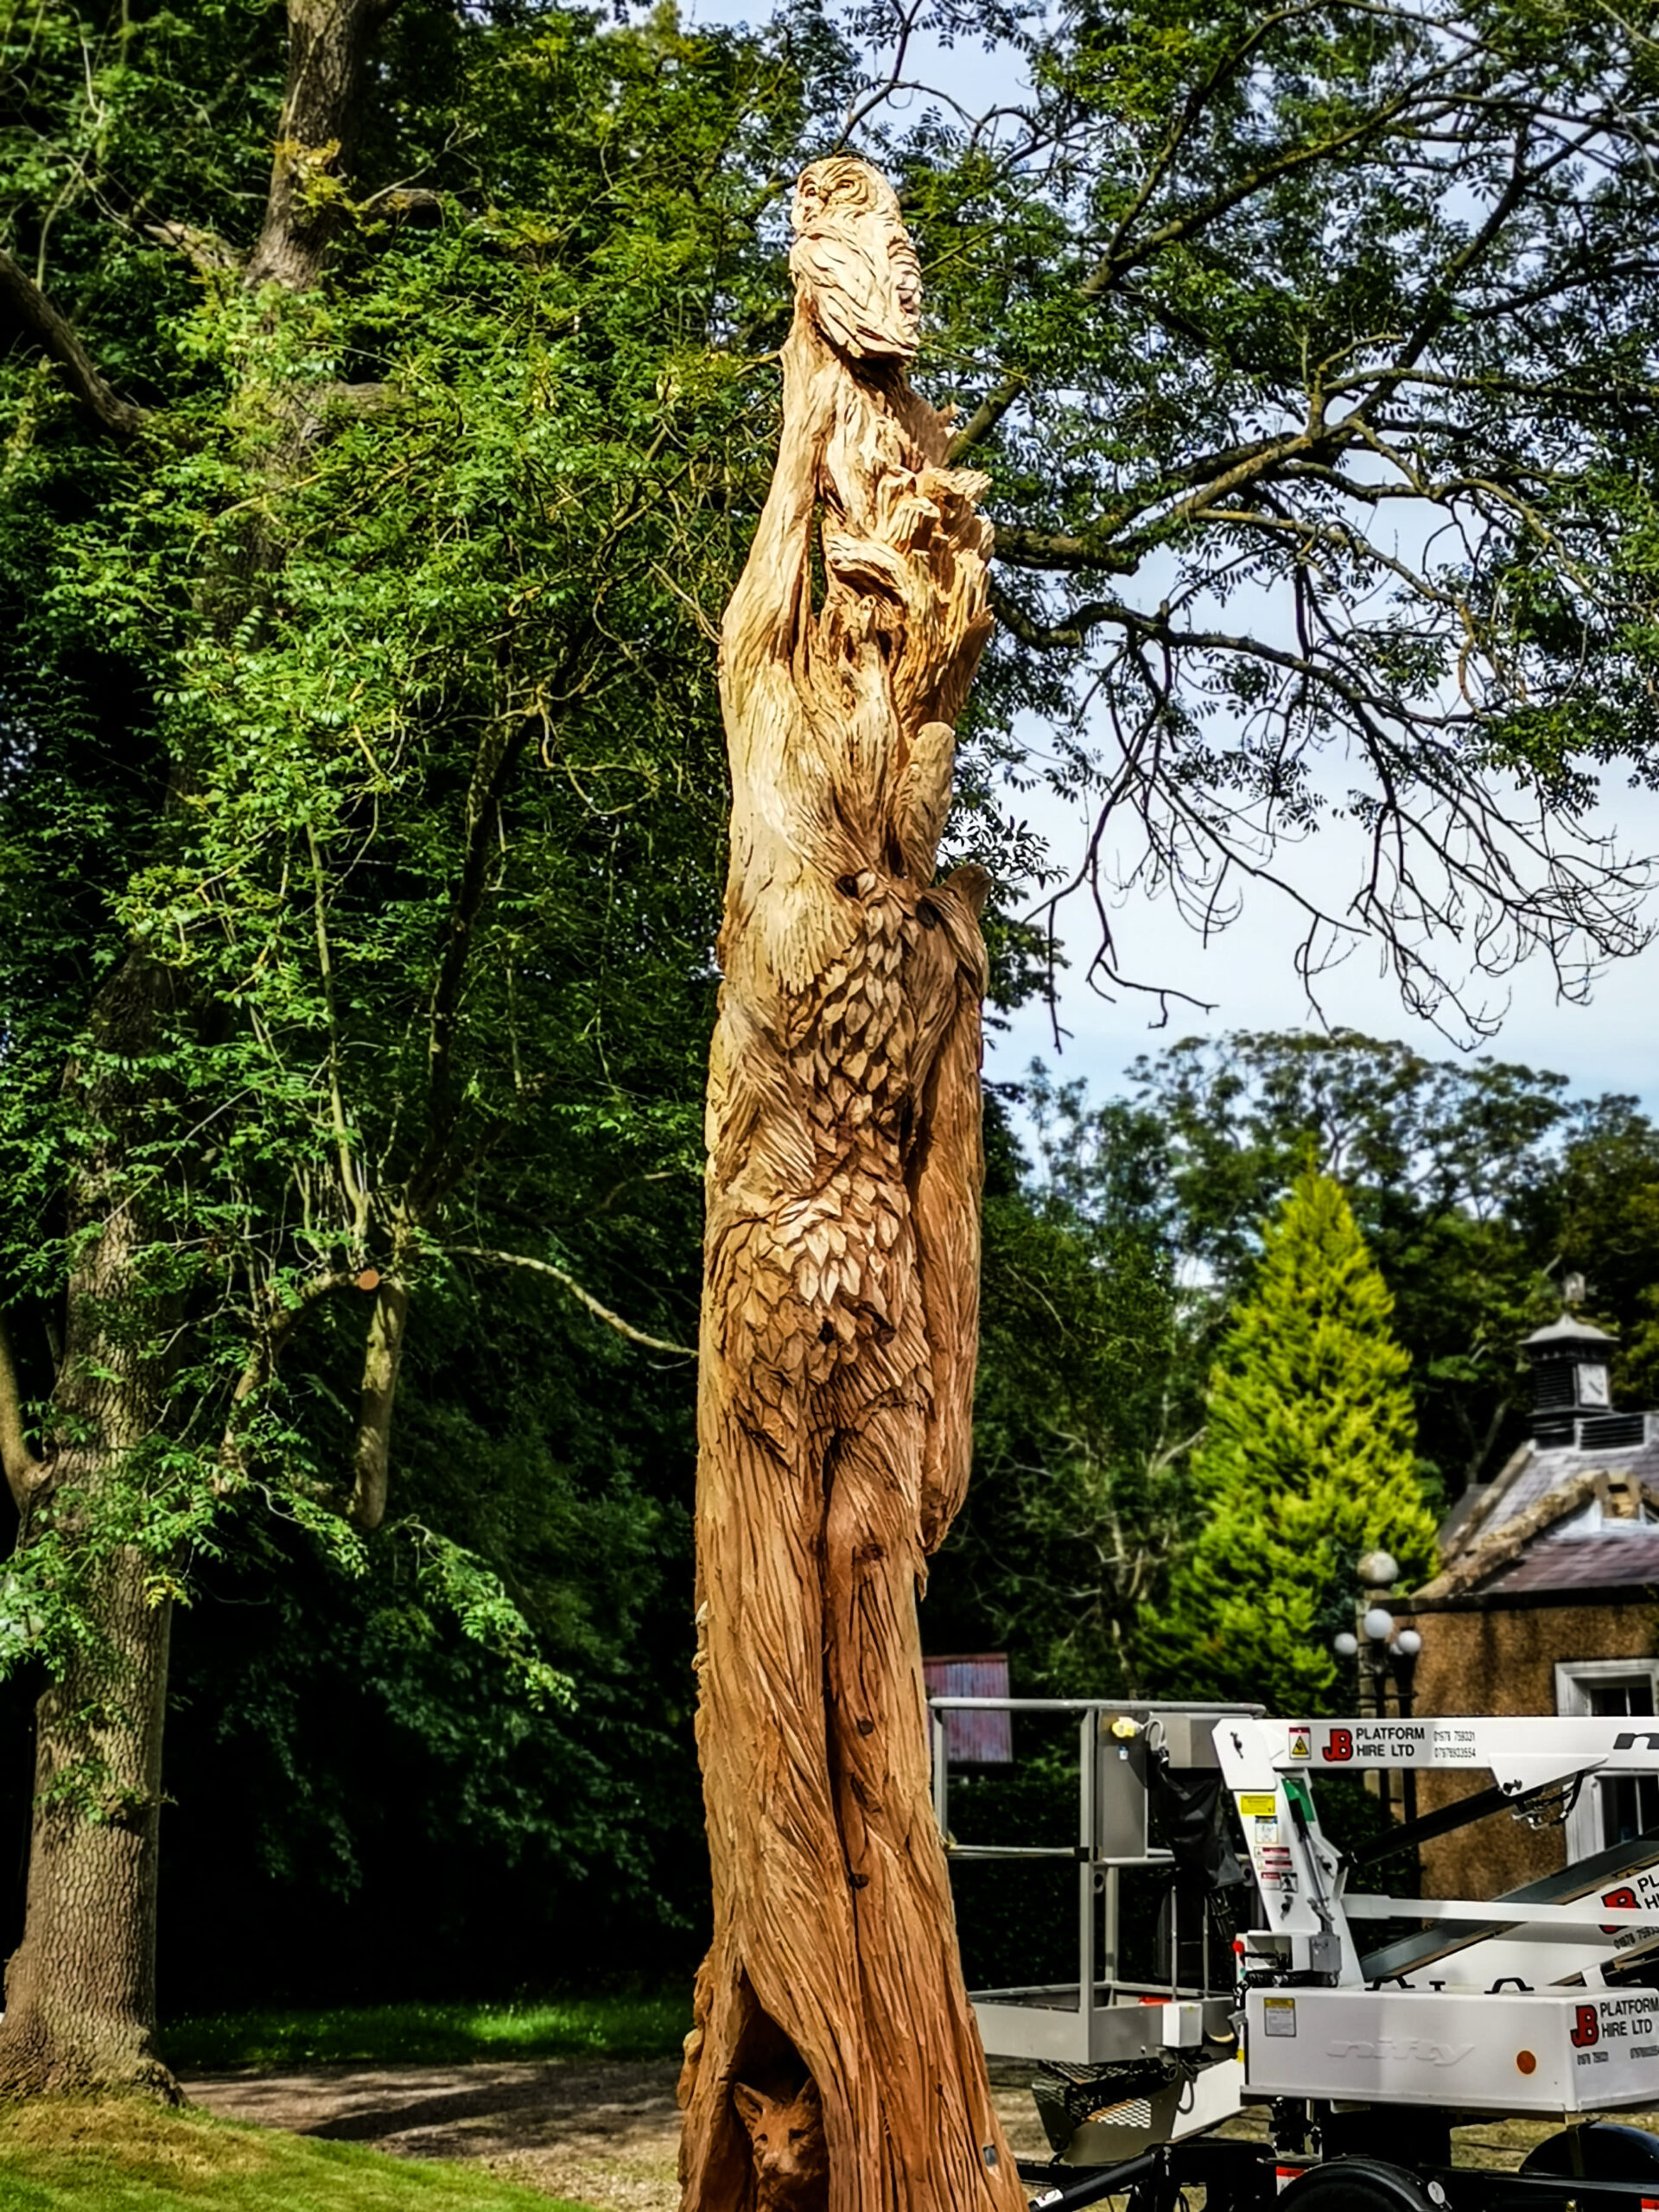 rear view of the ent tree sculpture by simon o'rourke, showing the leaf and trunk detail